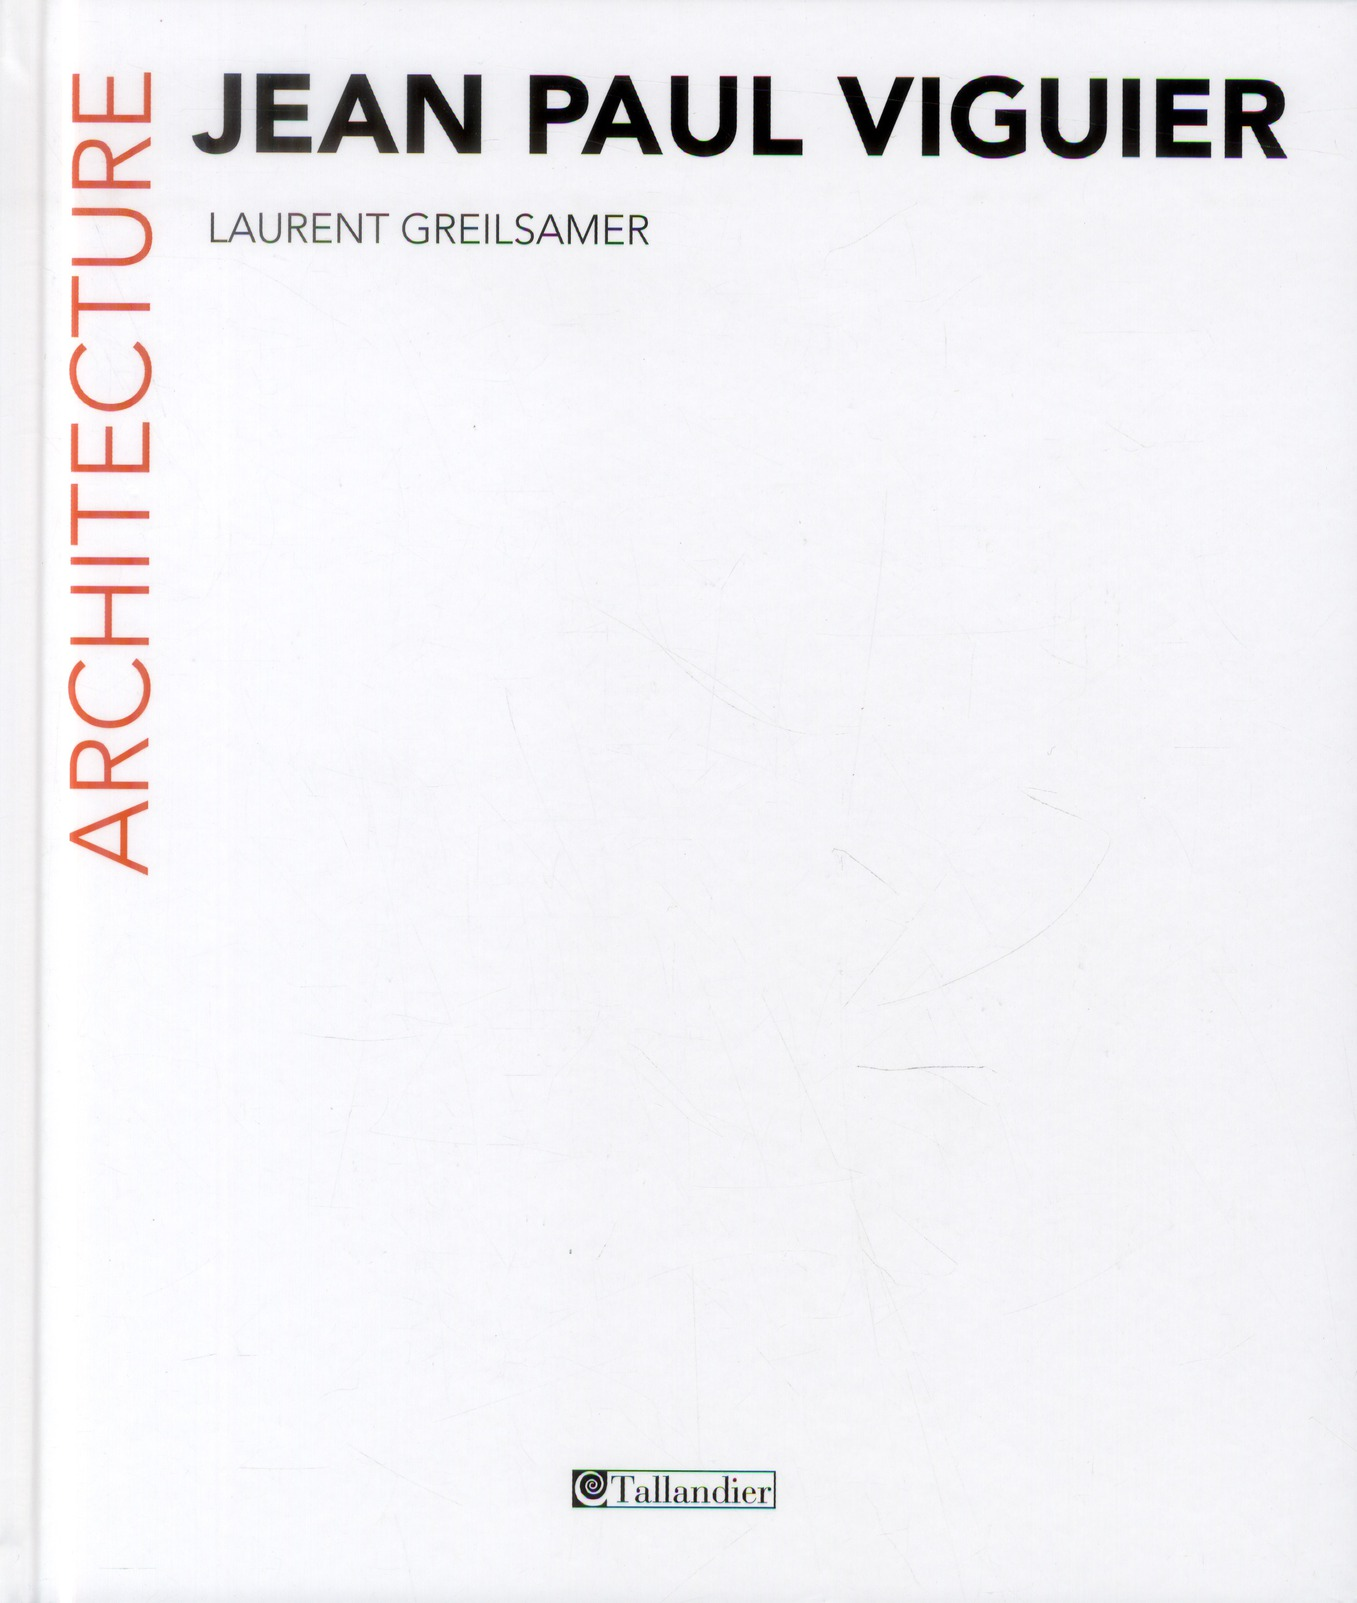 JEAN-PAUL VIGUIER ARCHITECTURE